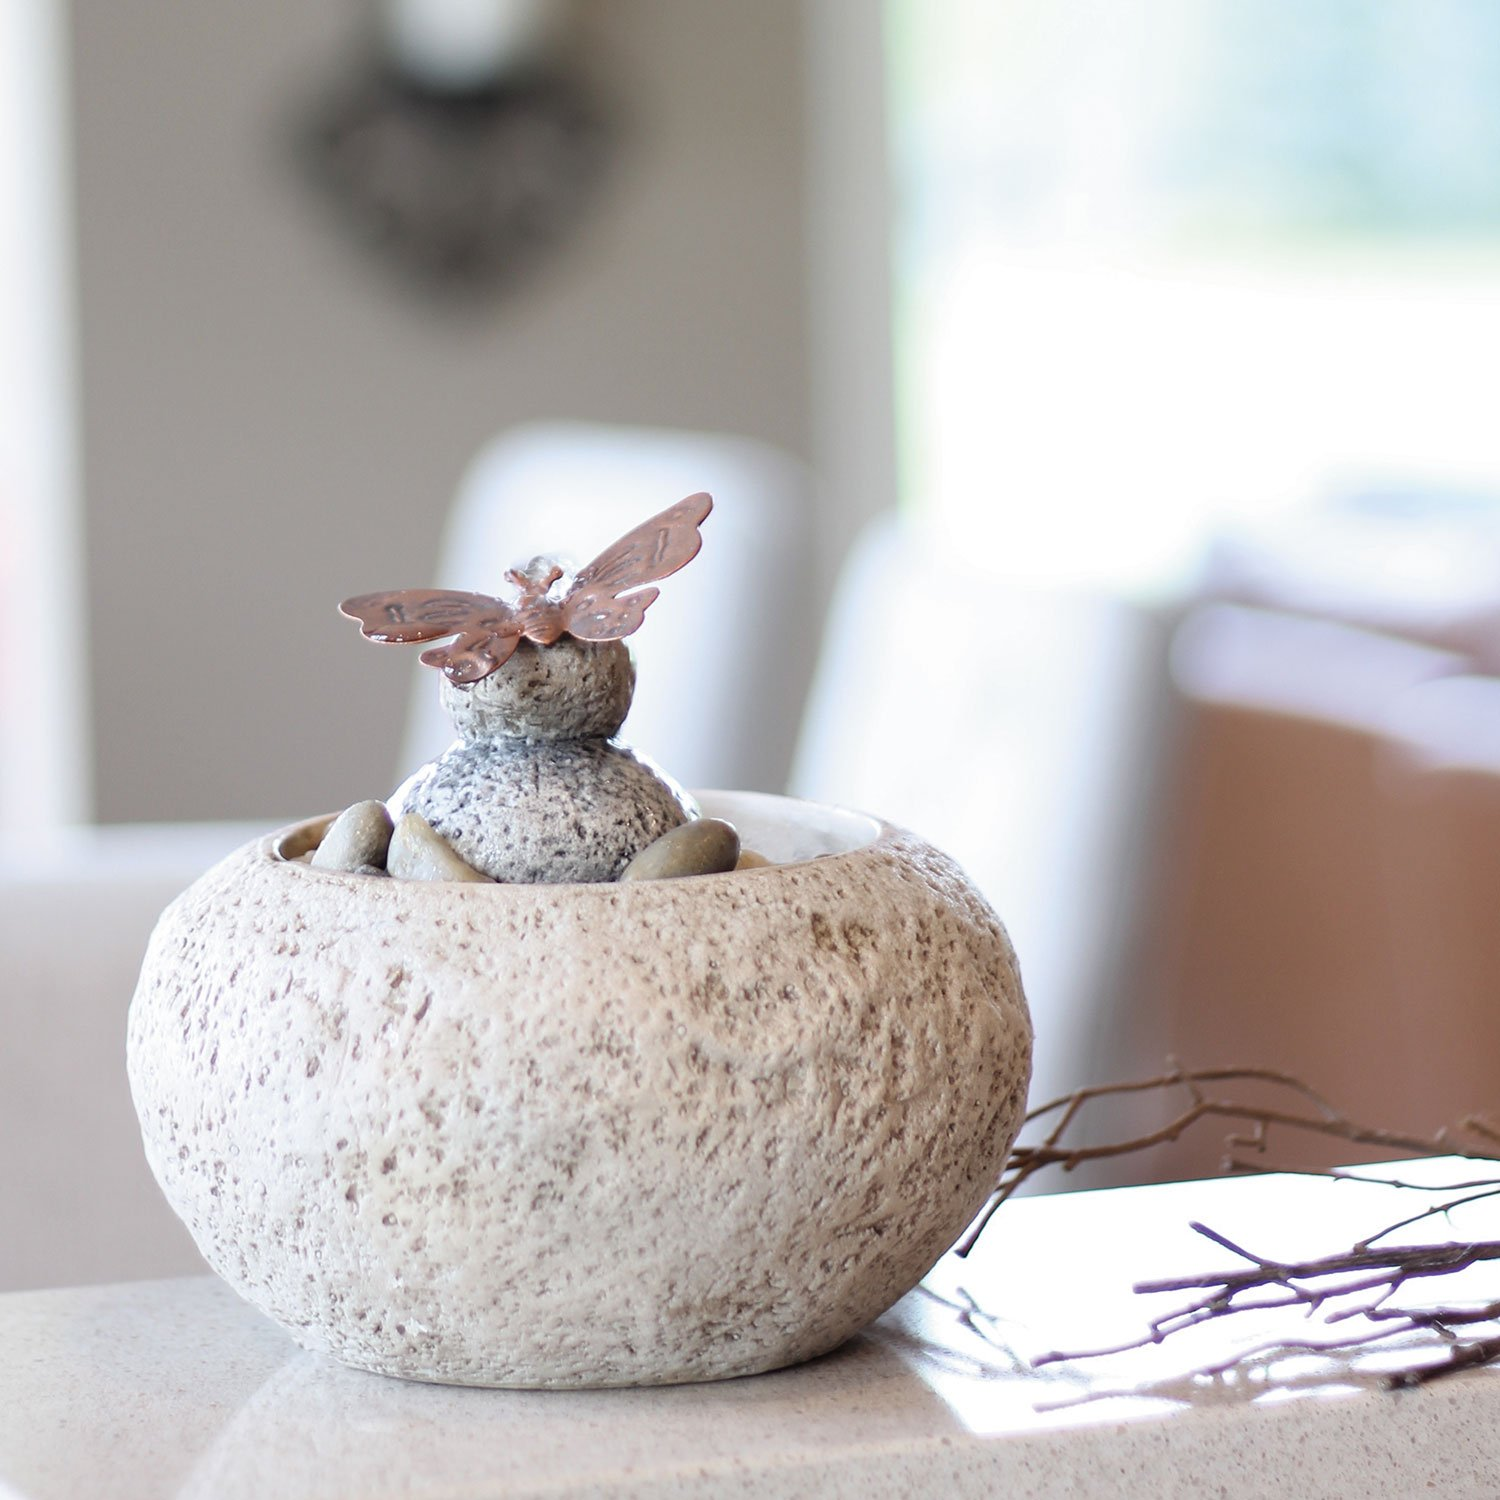 Foreside Home & Garden Butterfly On Rock Indoor Water Fountain with Pump, Brown